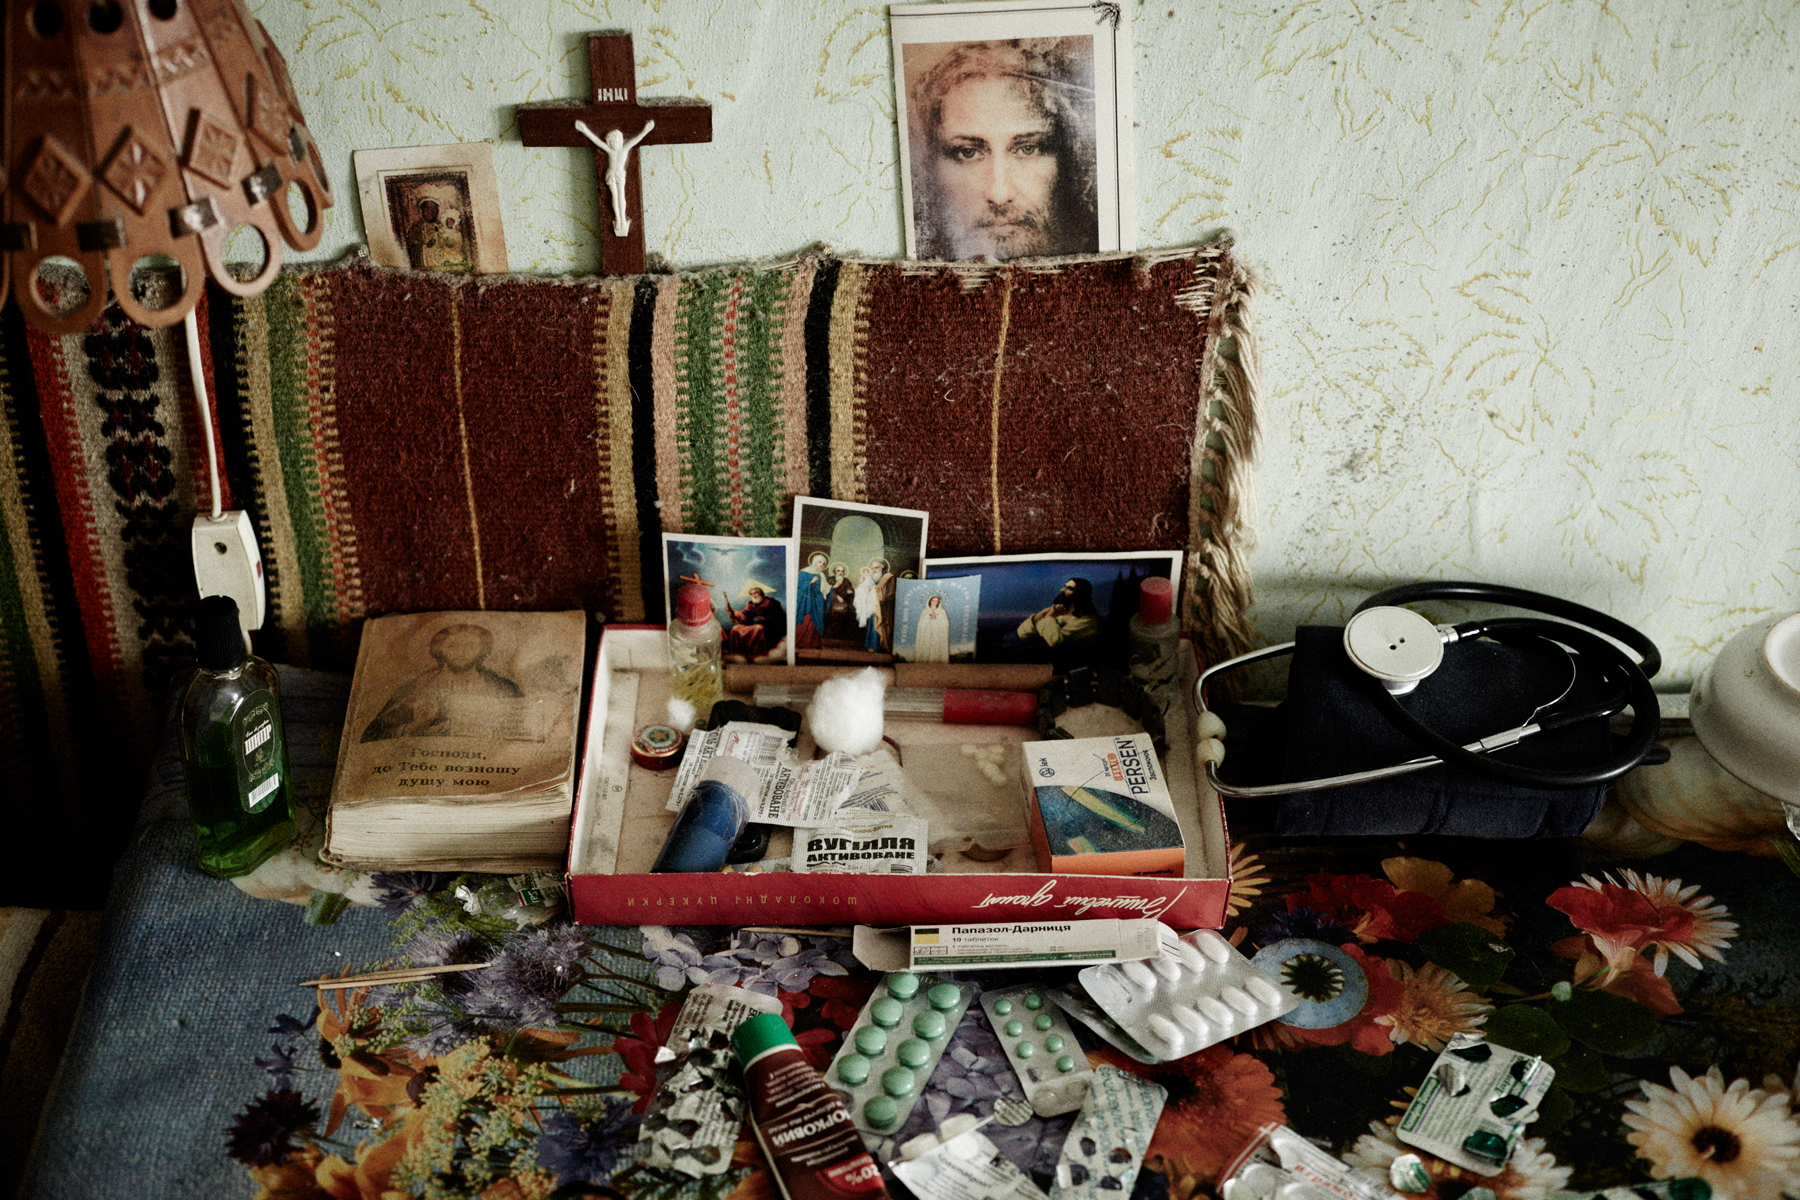 Medicine and religious items, Kalush, February 2014